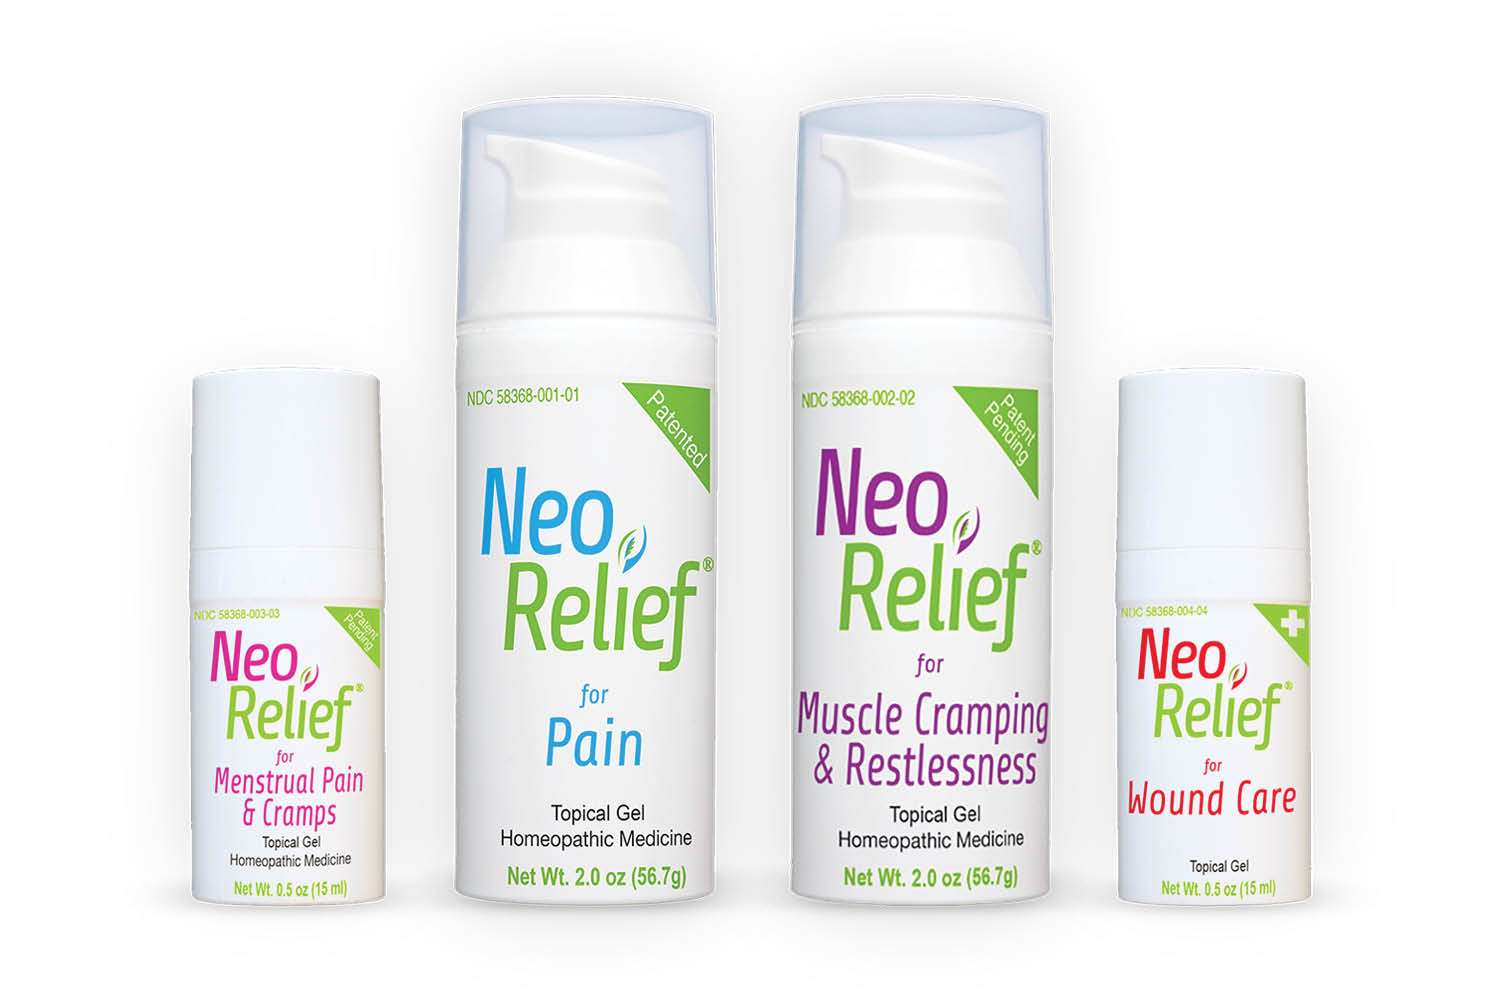 Pain is a way of life.  Muscle pain, headaches, cuts, bruises, abrasions, menstrual, rashes.  Everyone lives with pain and seeks many forms of remedies. BioLyte focuses on relieving pain with three natural products. NeoRelief - WoundEze - Period Relief.